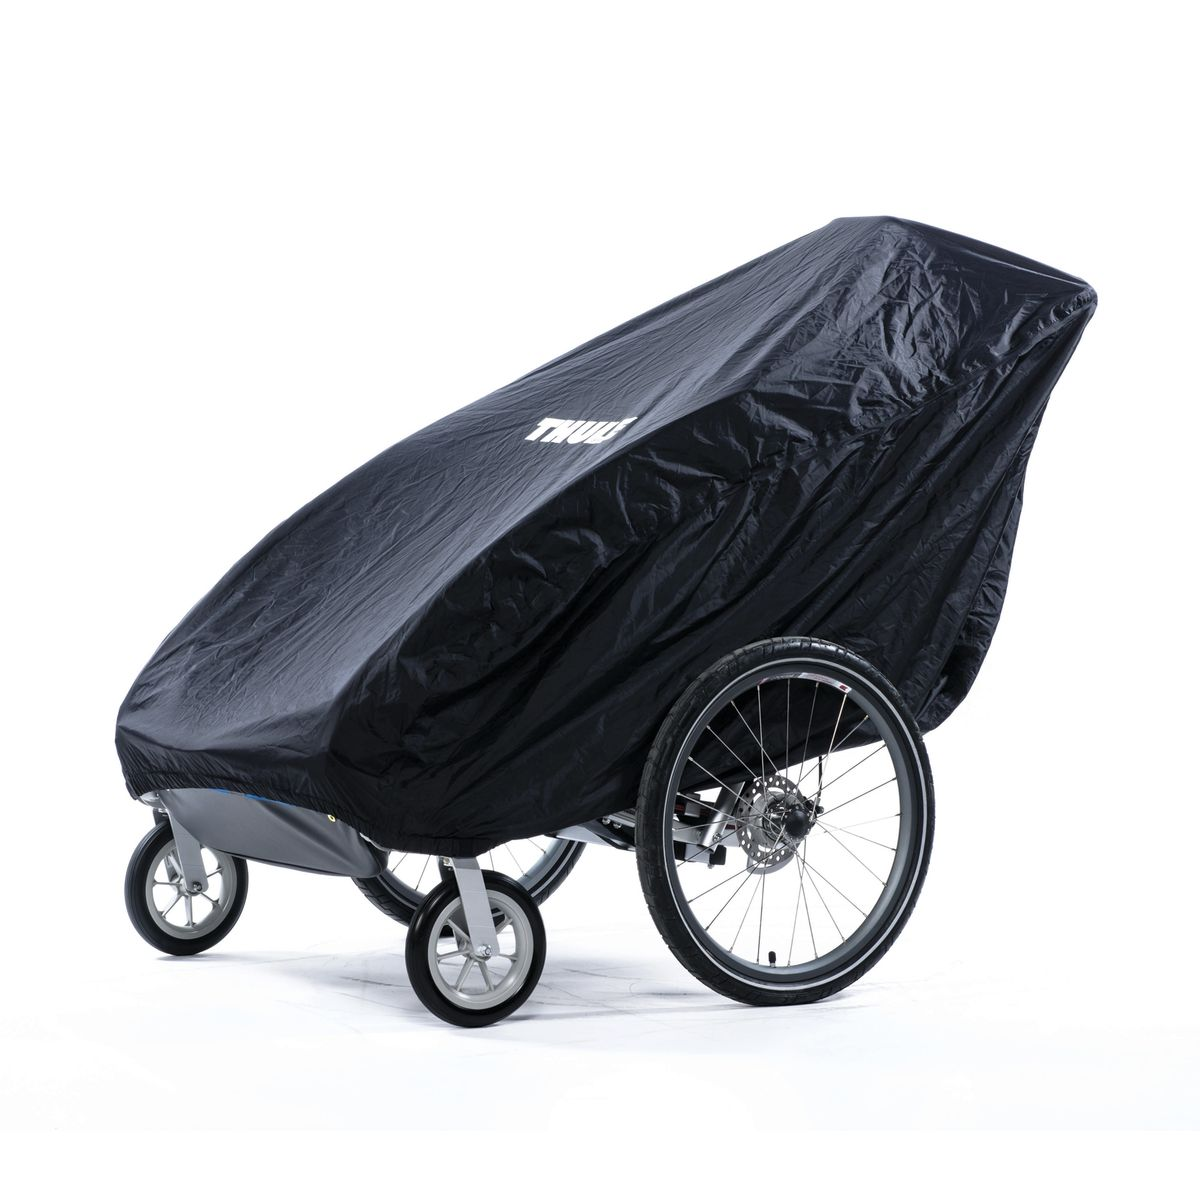 Thule Chariot Protective cover for child bike trailer | bike_trailers_component